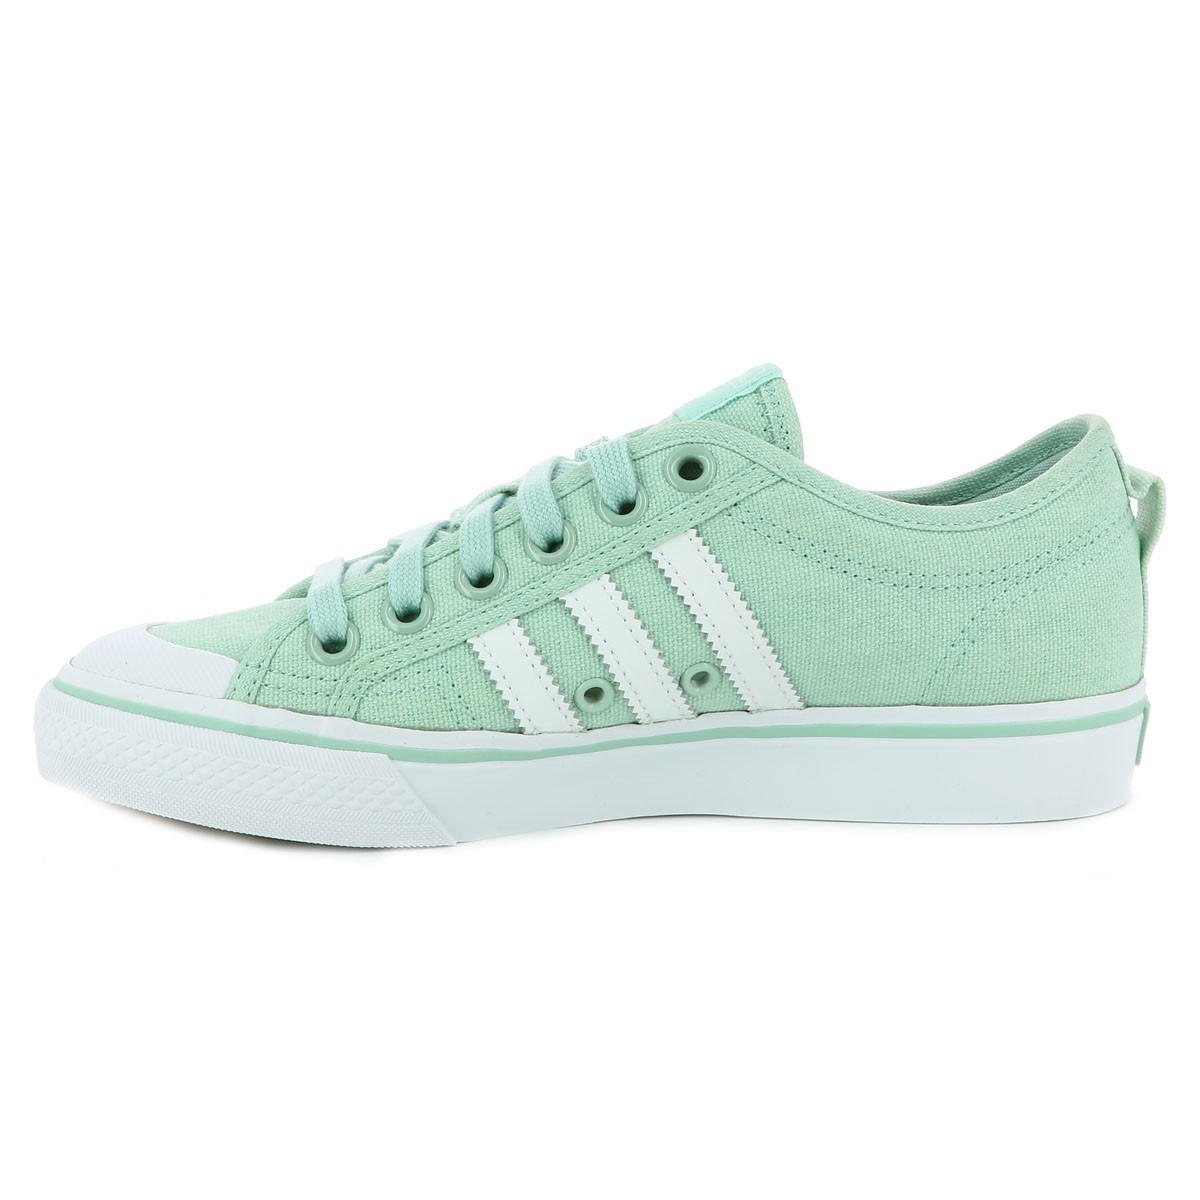 site réputé 8cb00 abc1f ADIDAS ORIGINALS Baskets femme vert